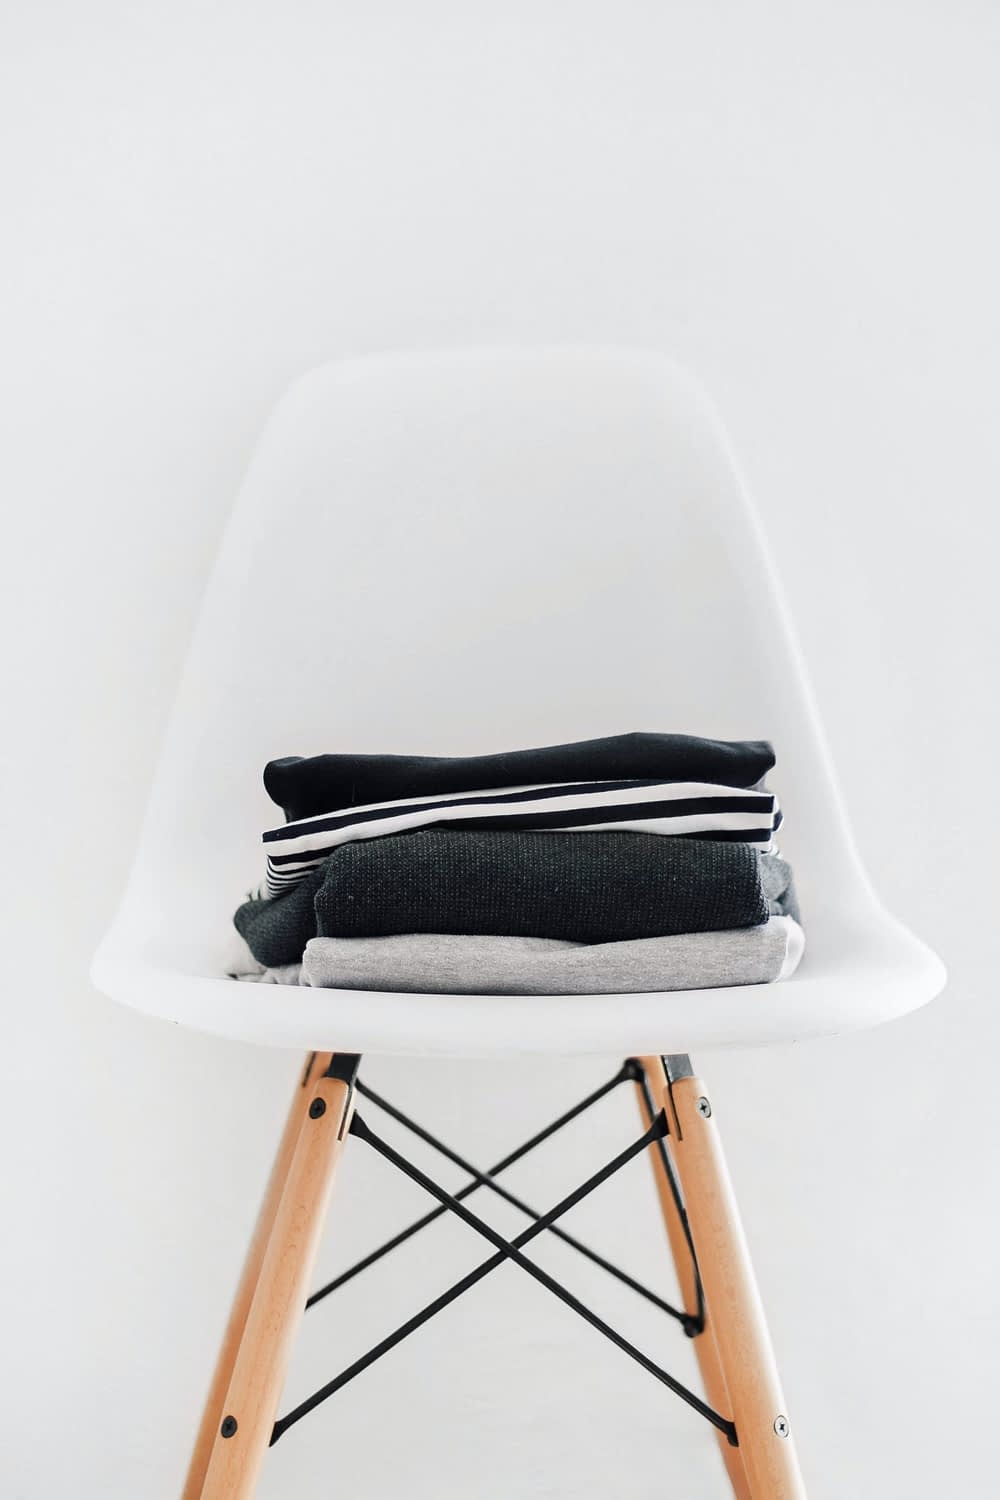 pile of black, white, and gray textiles on white padded chair with brown frame